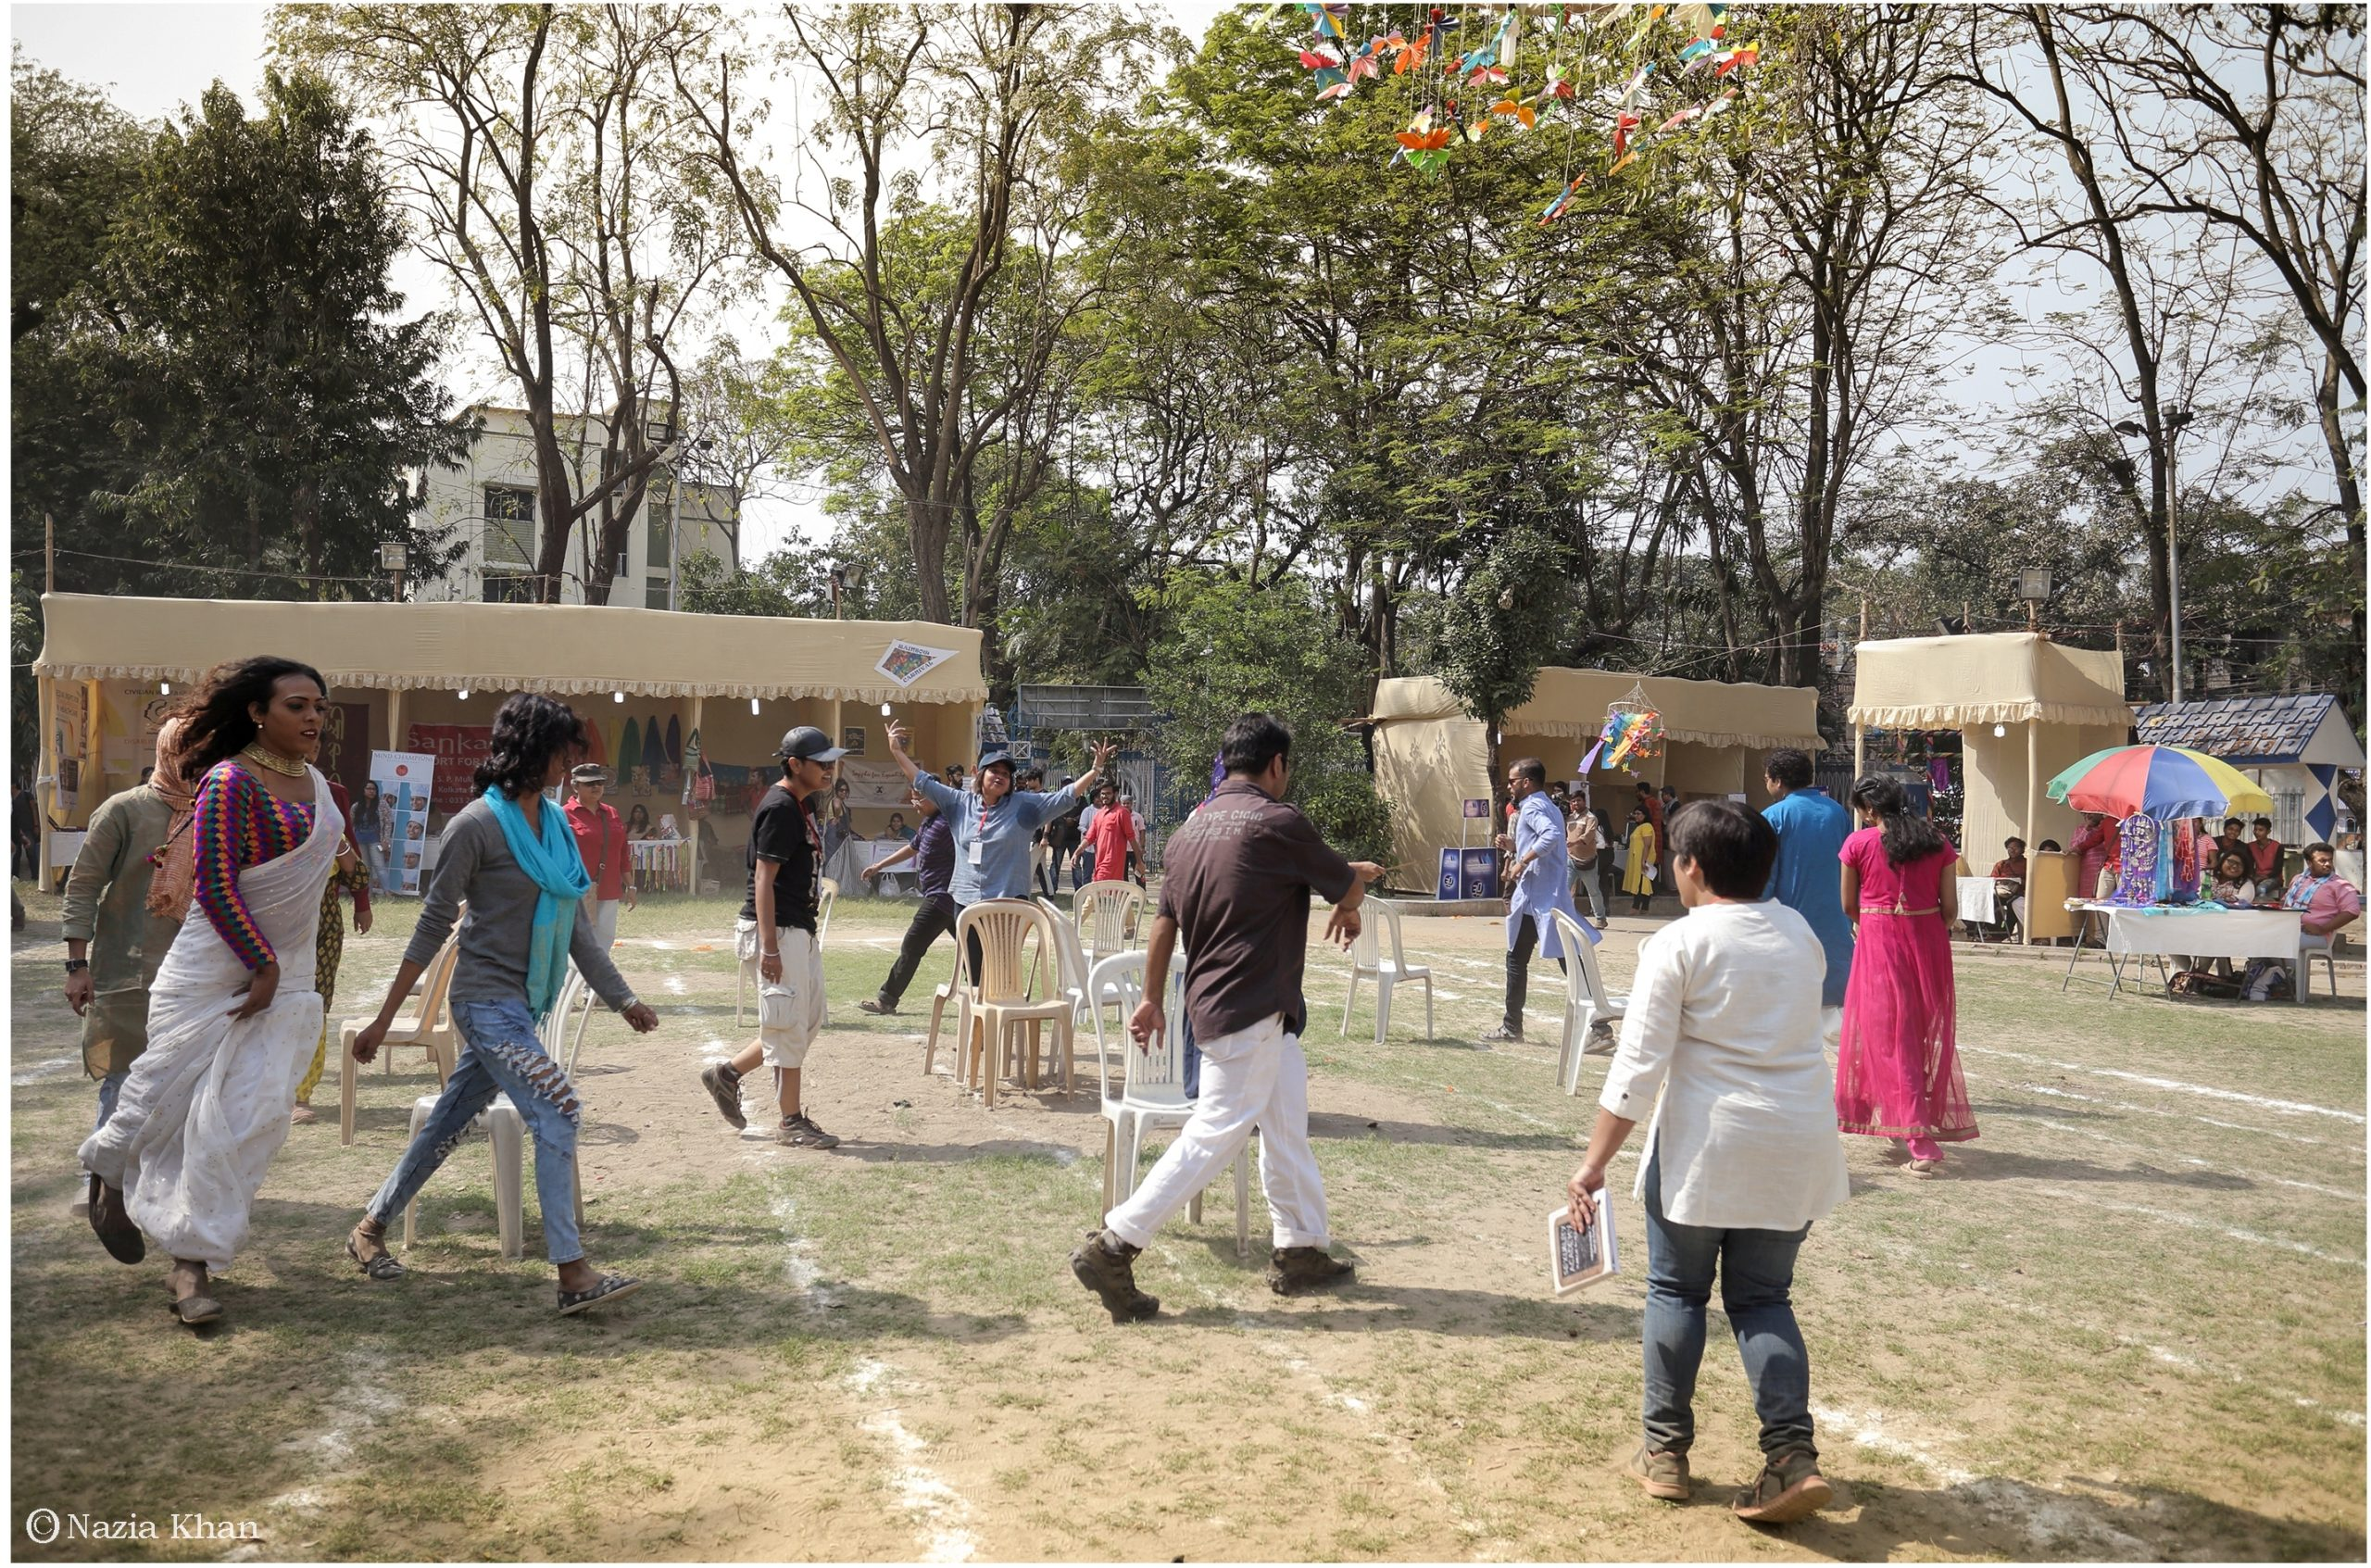 This photograph shows a long shot of a game of musical chairs in progress under the bright sunlight at the 'Kolkata Rainbow Carnival 2018'. Apart from 9-10 players doing the rounds around eight chairs, three umpires can be seen engaged in the game. The game is being played at the centre of the park, which is the venue of the carnival. The playground has light grass and is marked with white chalk lines meant for races and other carnival games. In the background are a number of stalls with displays of decoration, craftwork and clothes. The stalls have a few visitors. The camera also takes in tall trees behind the stalls ringing the park. A building adjacent to the park is visible through the trees. The carnival was organized by the West Bengal Forum for Gender and Sexual Minority Rights on February 18, 2018 at Triangular Park in South Kolkata. Photo credit: Nazia Khan